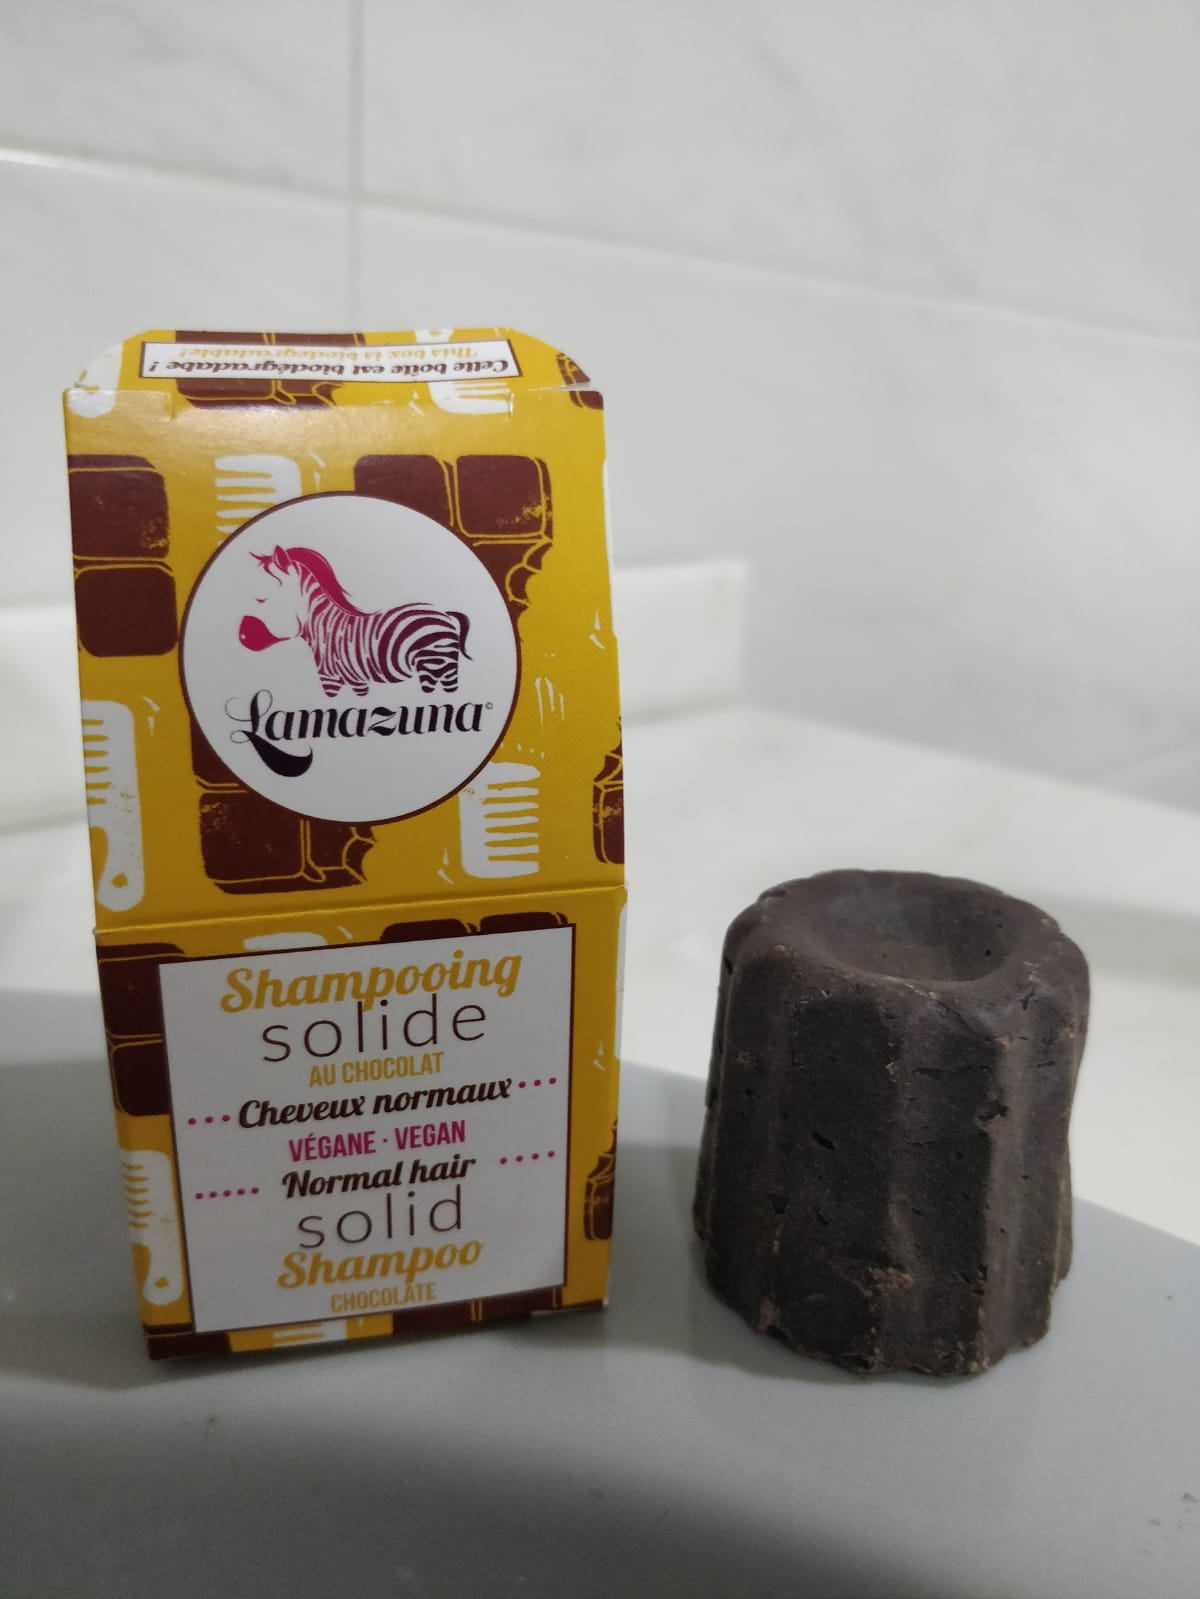 Shampoo bar - Normal hair - Chocolate